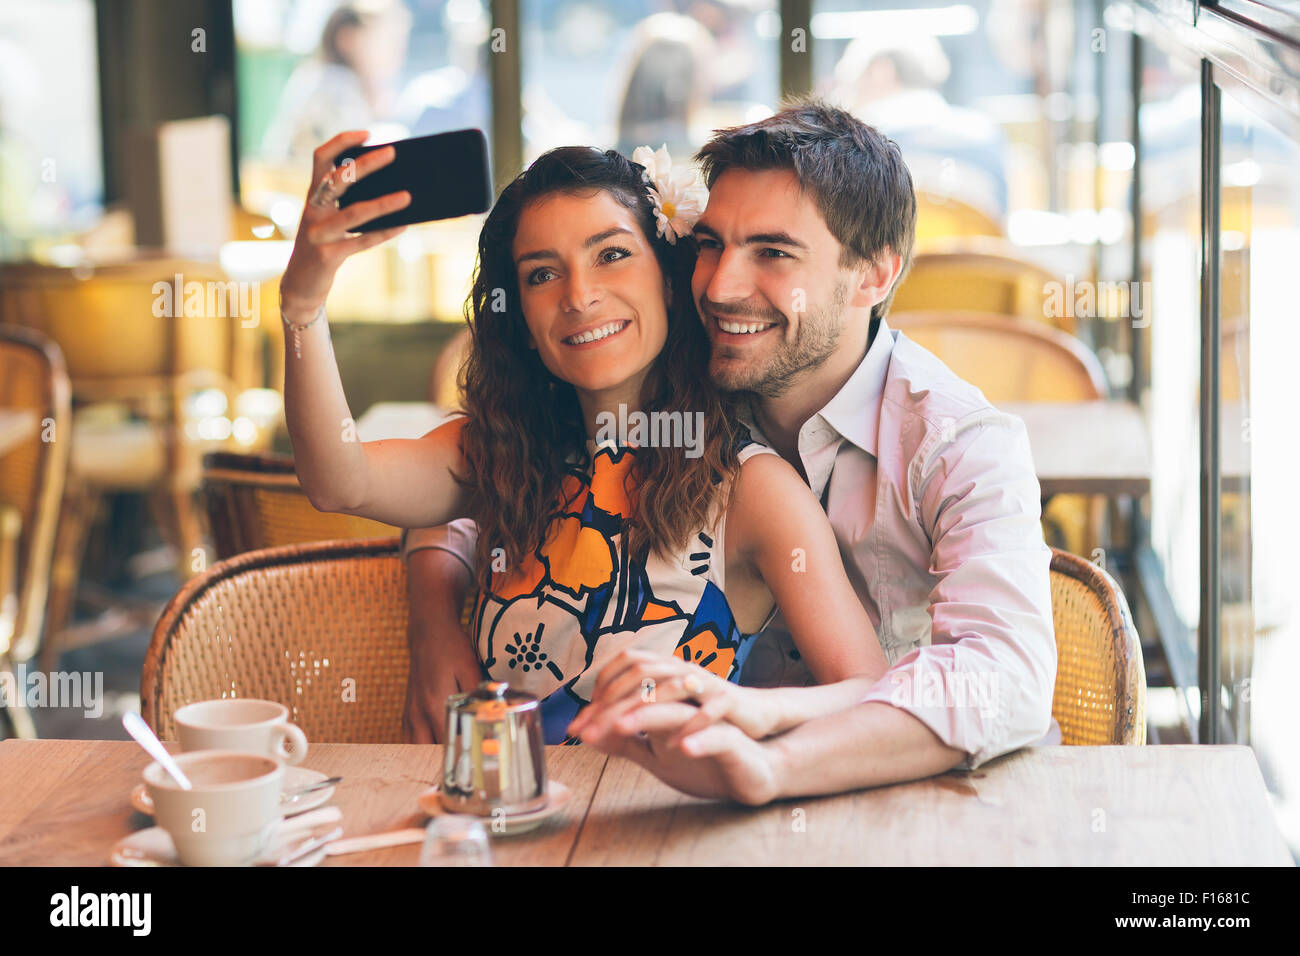 Paris, couple dating in Cafe Stock Photo